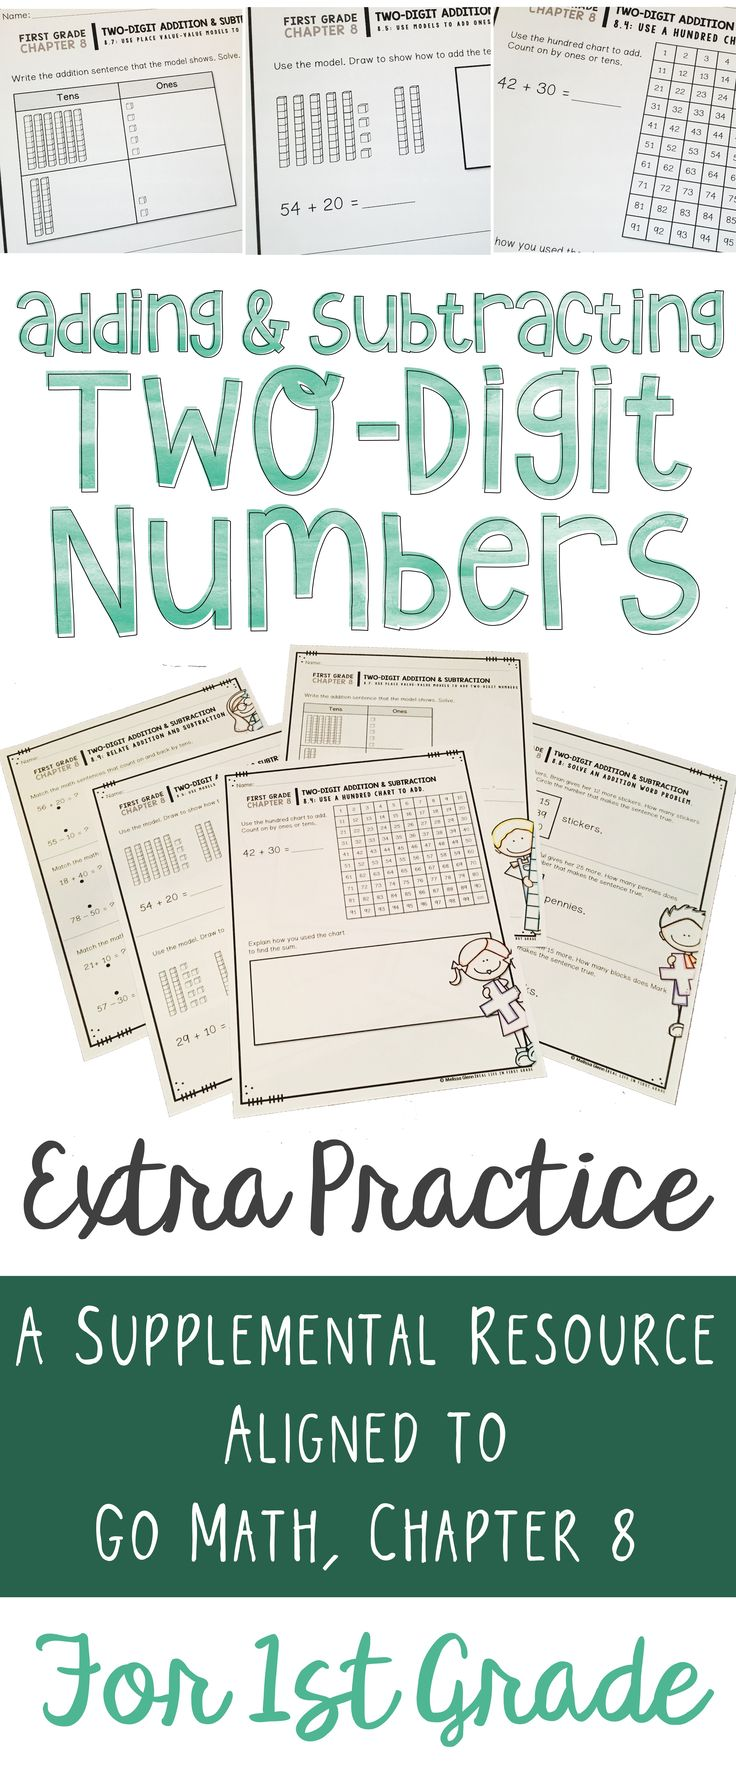 These extra practice pages are perfectly aligned to Go Math Chapter 8 (for first grade). Use them as activities or assessments for your students when teaching two-digit addition and subtraction strategies with and without regrouping. These pages have been an absolute lifesaver in my classroom!